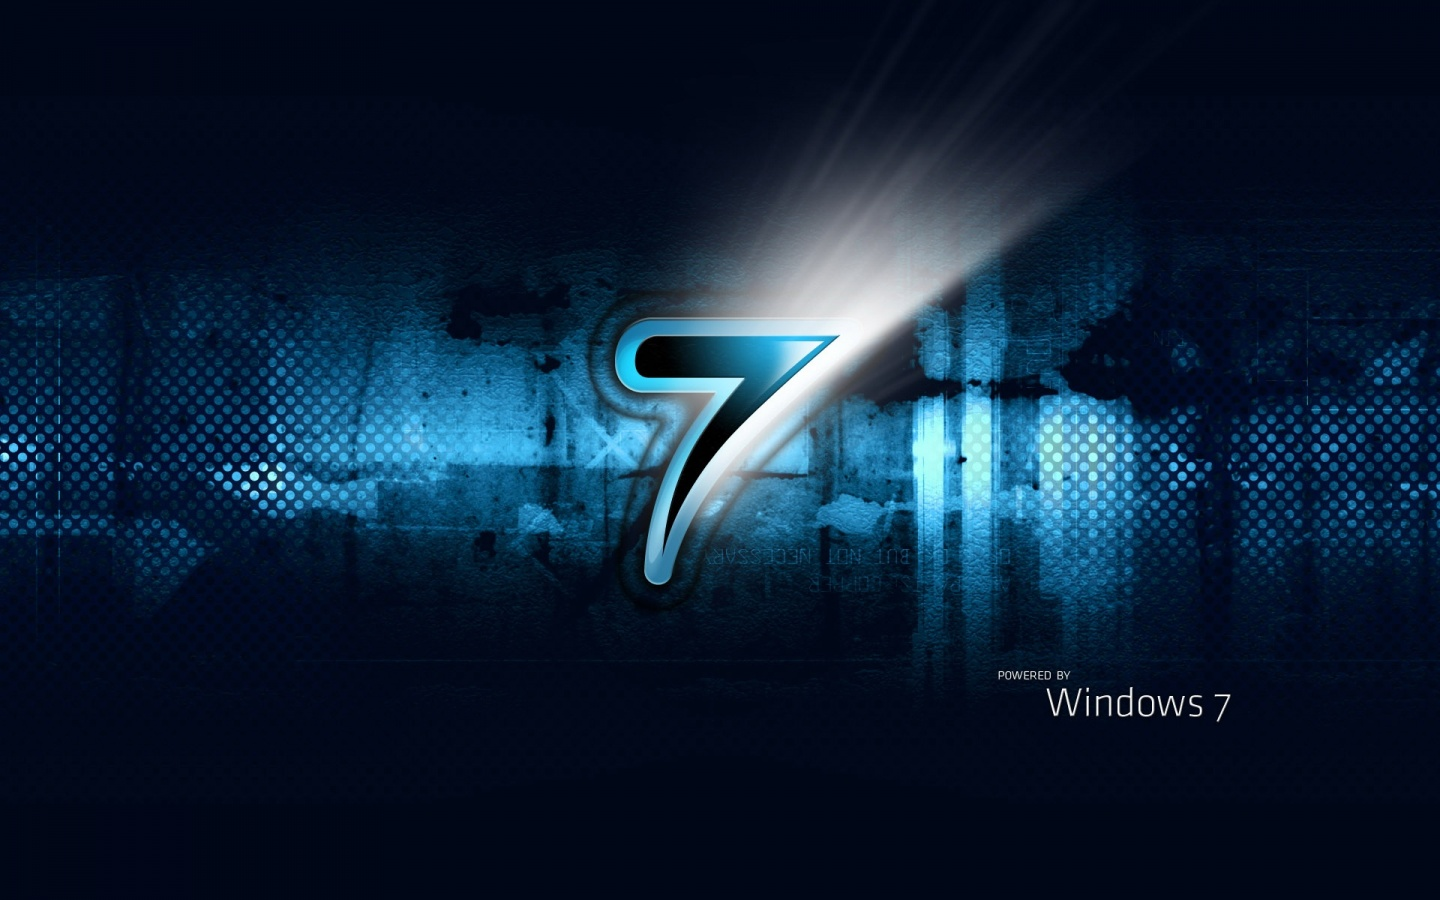 hd wallpapers for windows 7 live wallpaper for windows 7 Desktop 1440x900